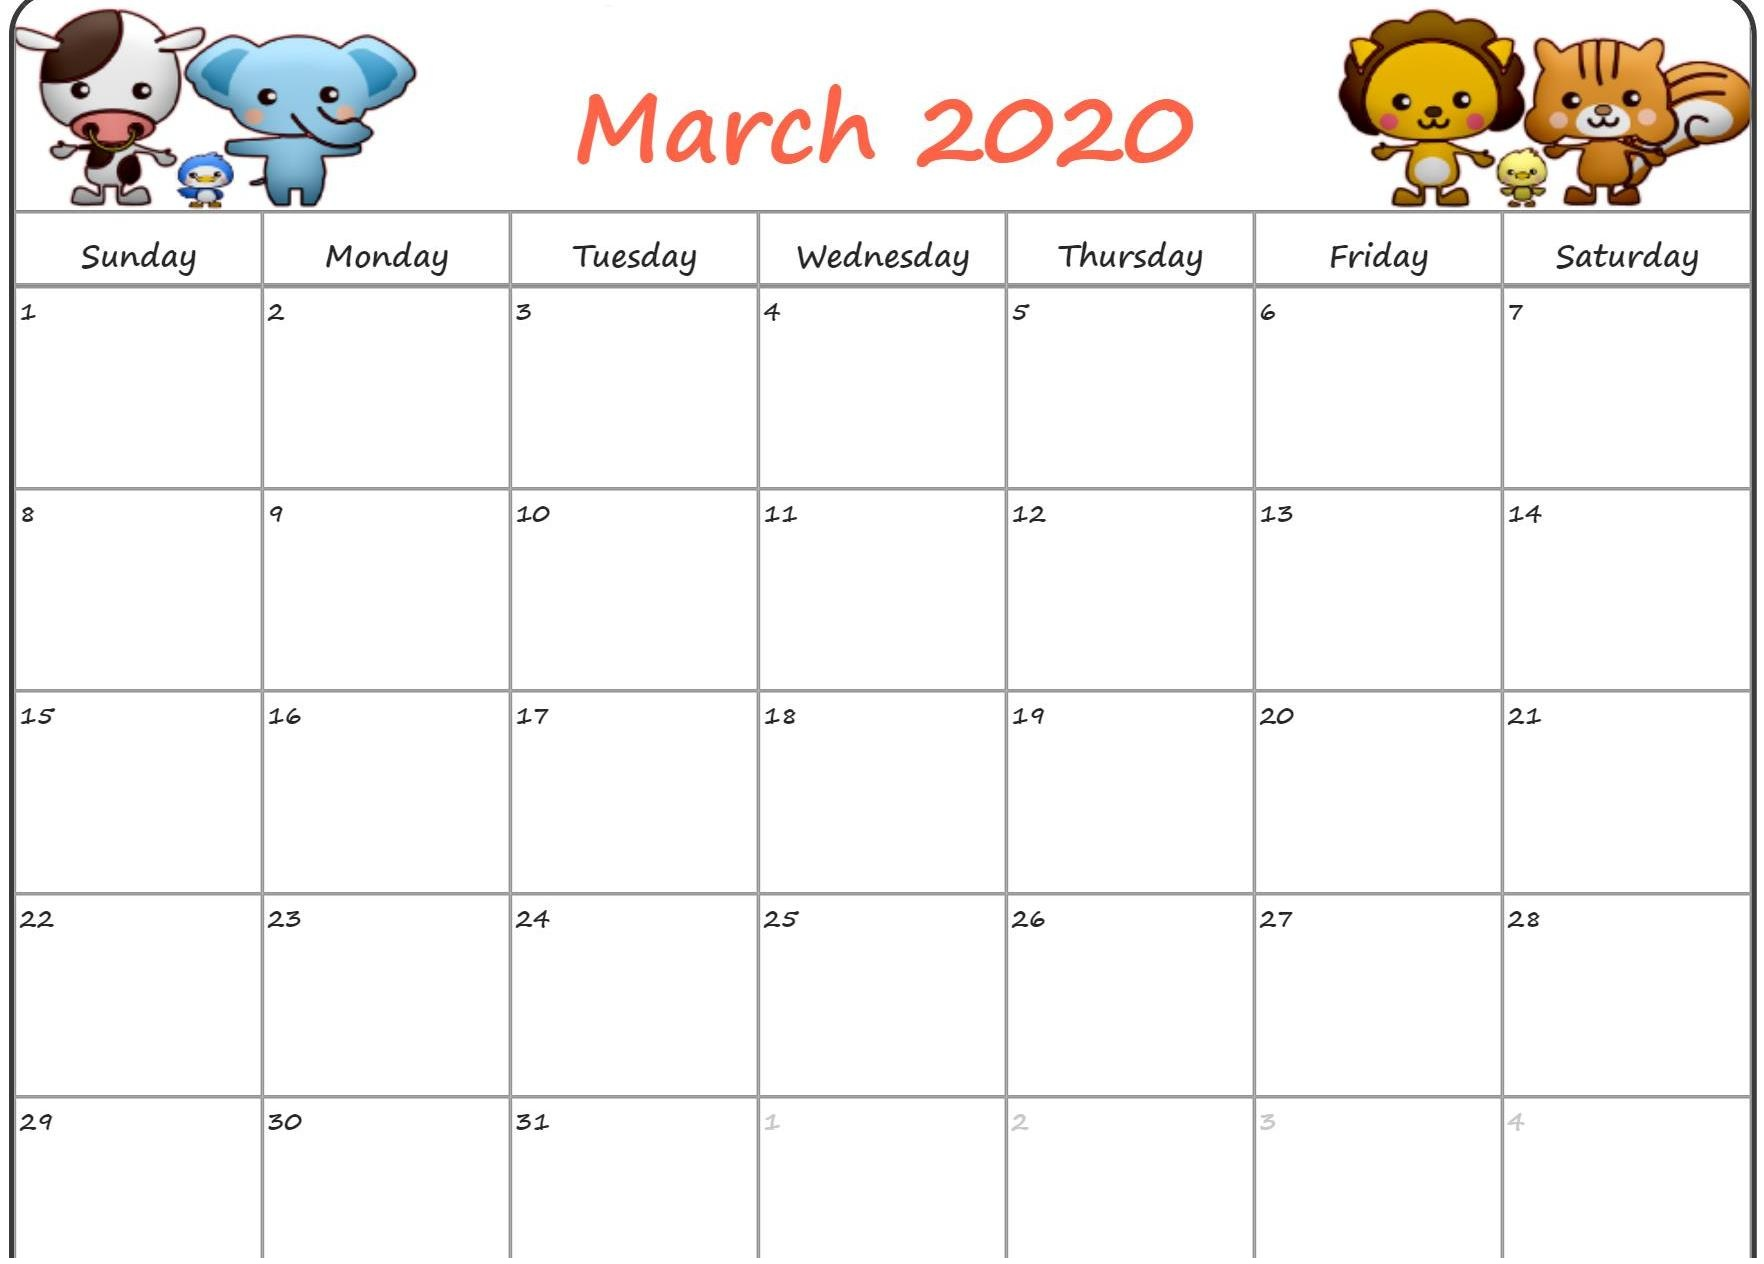 March 2020 Calendar Monthly